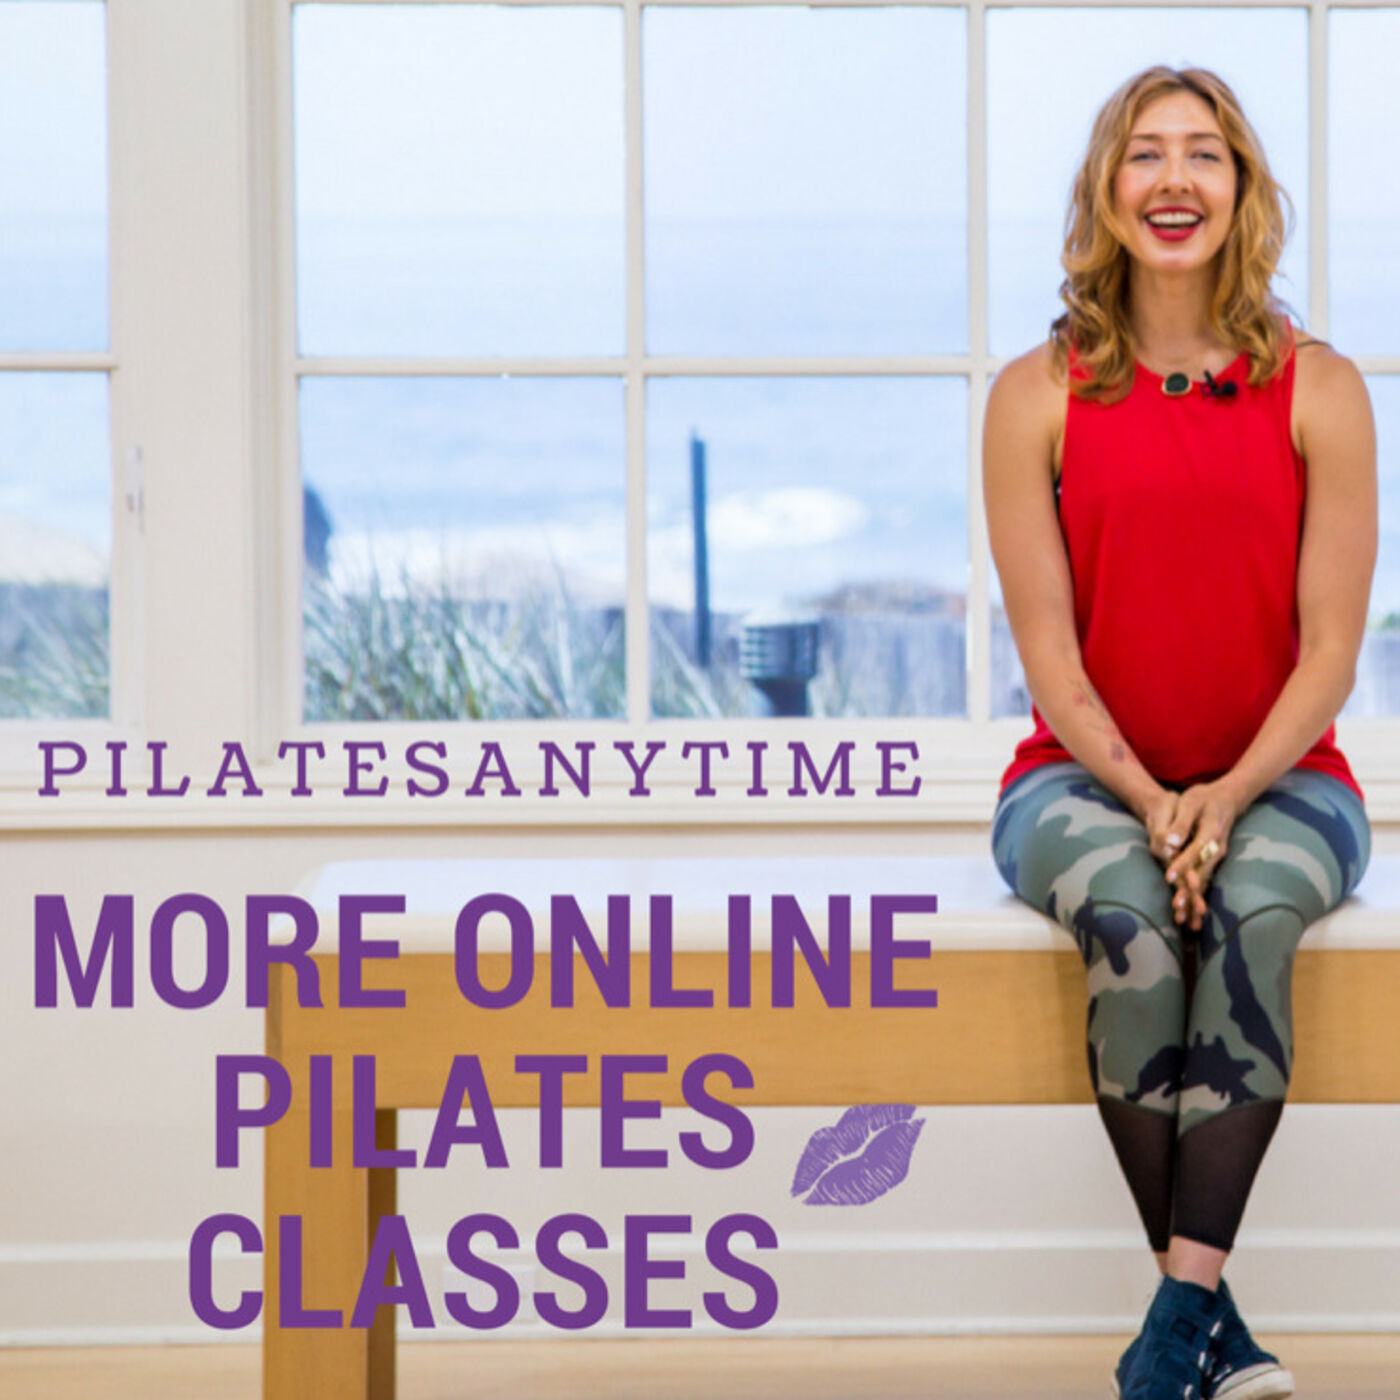 Lesley Logan Discusses Pilates Sessions & Retreats, How to Develop an Online Fitness Business and Create Online Platforms for Training, and the Marketing Science Behind Online Trainers